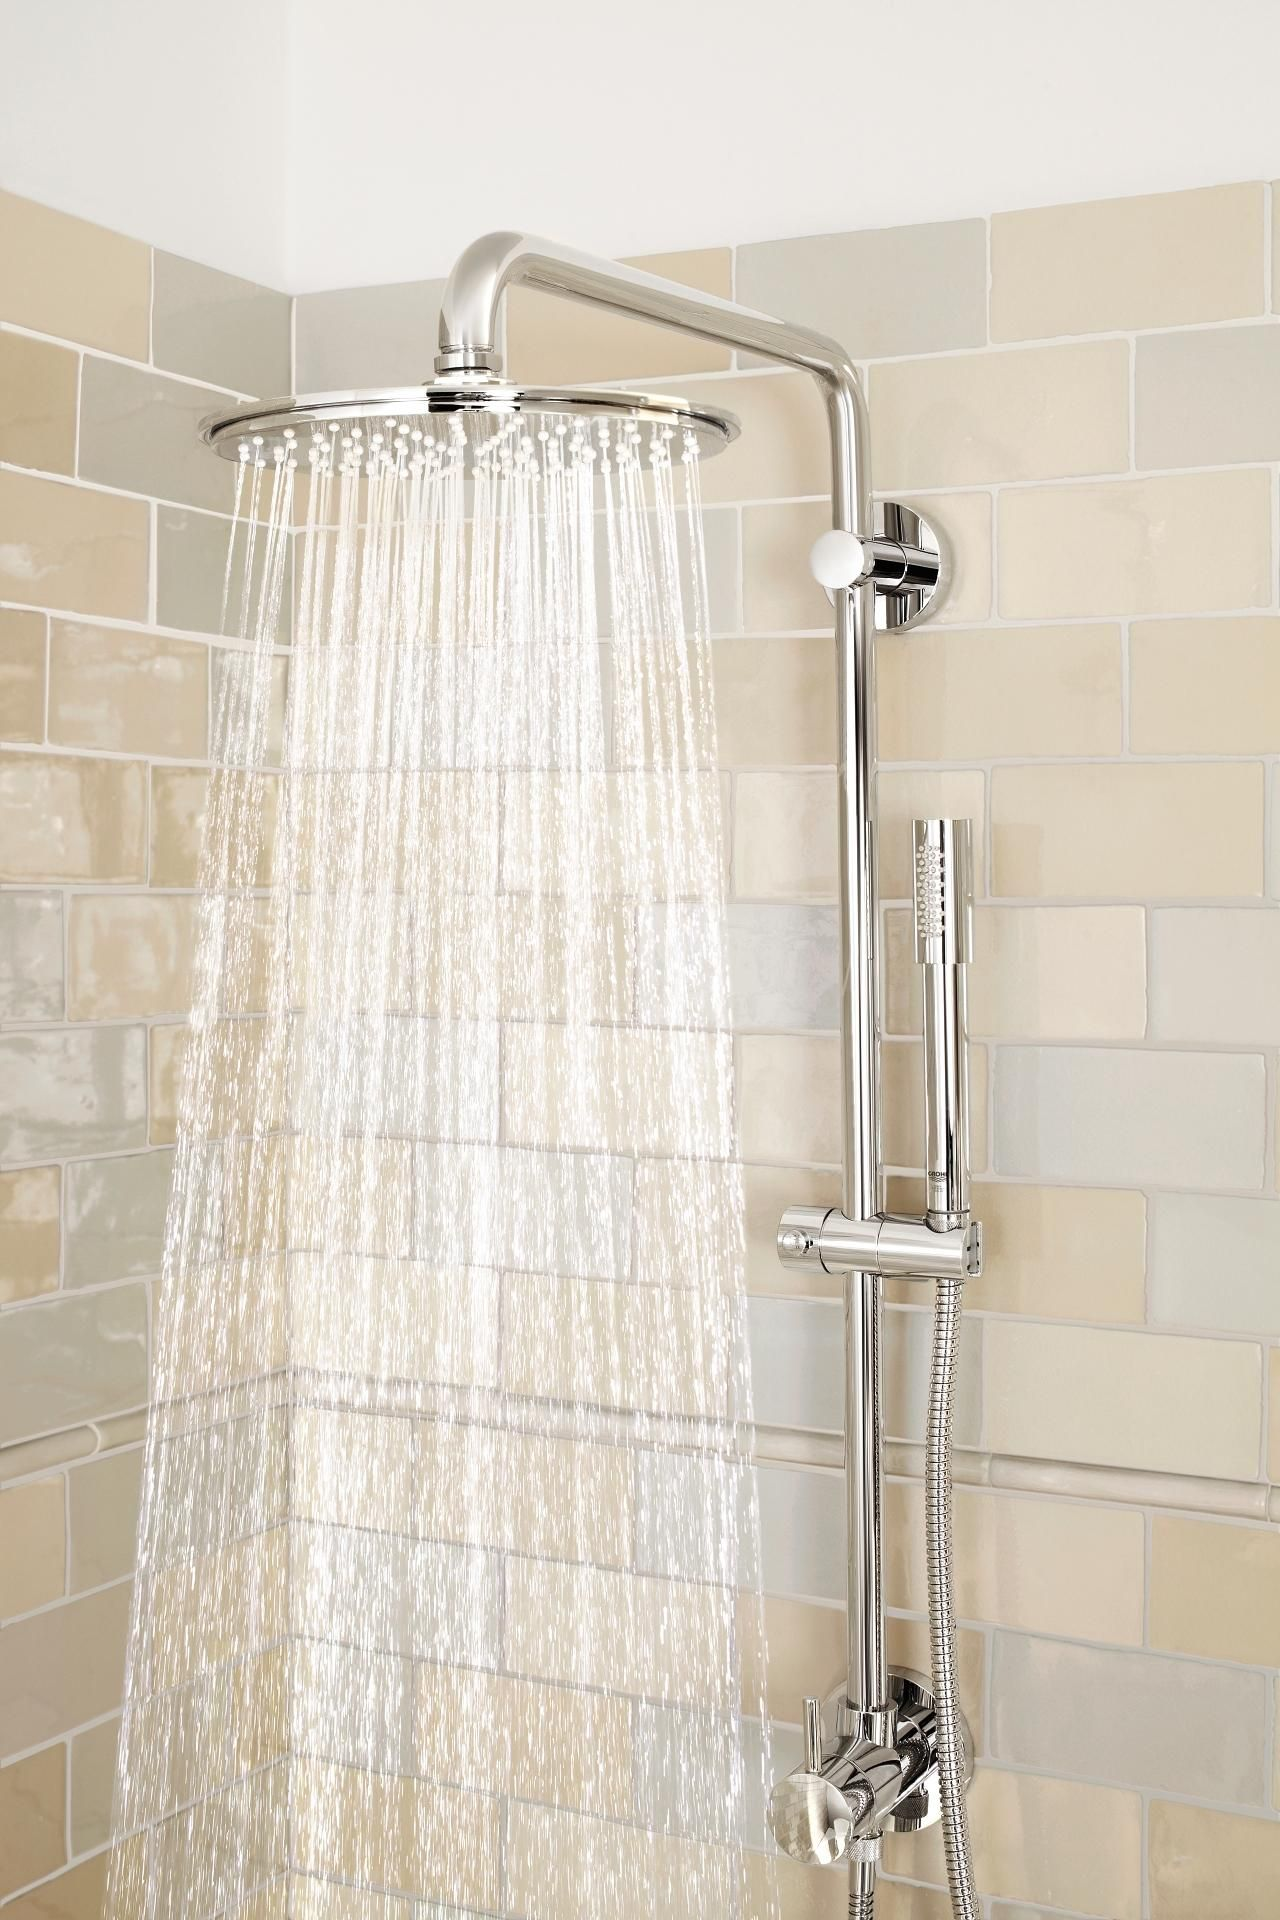 Retro Fit Shower System Shower Systems Grohe Shower Systems Shower Shower Remodel